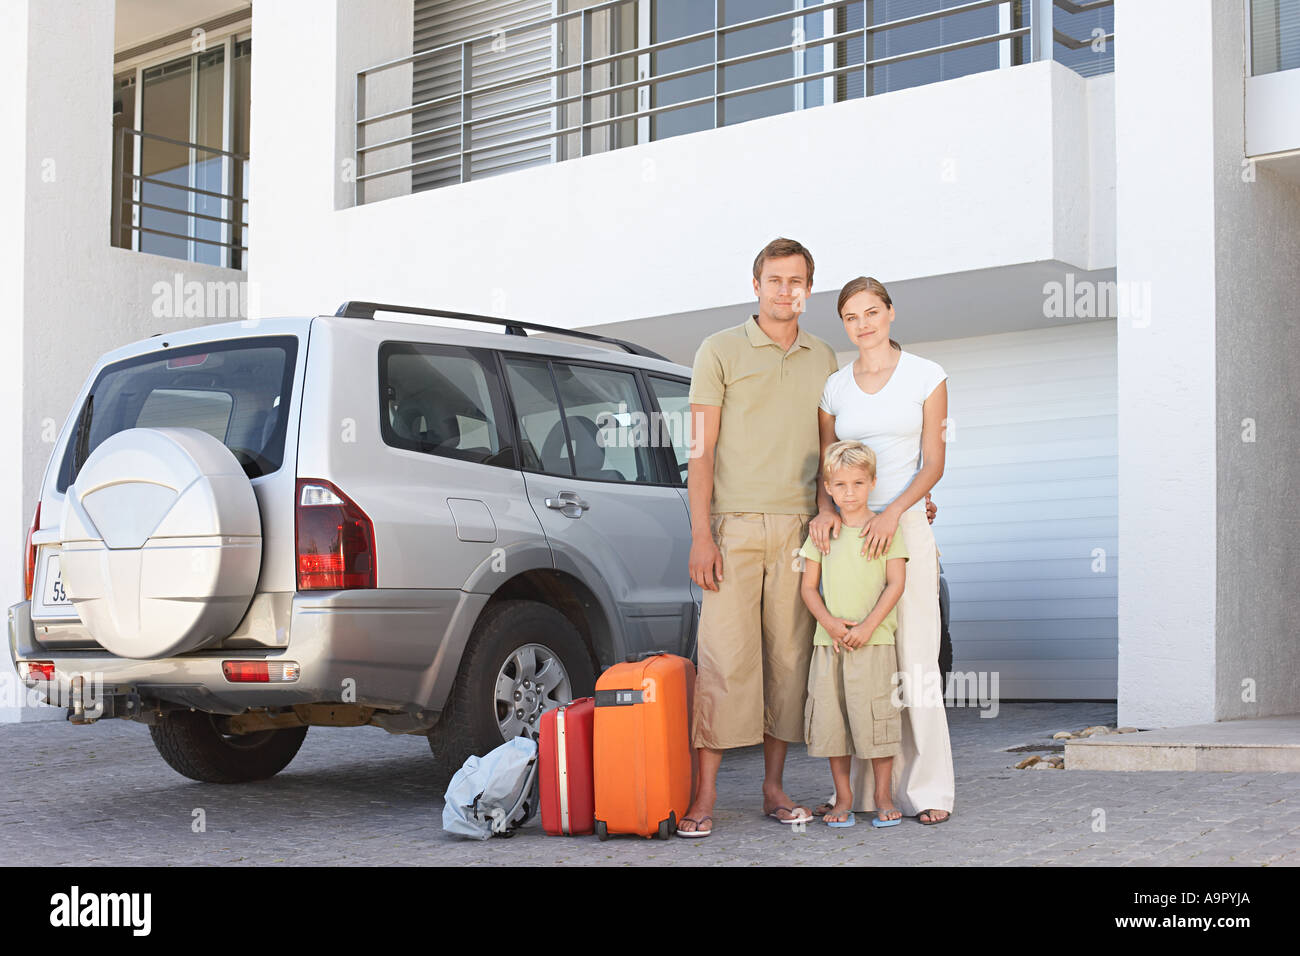 Family stood by car with suitcases - Stock Image